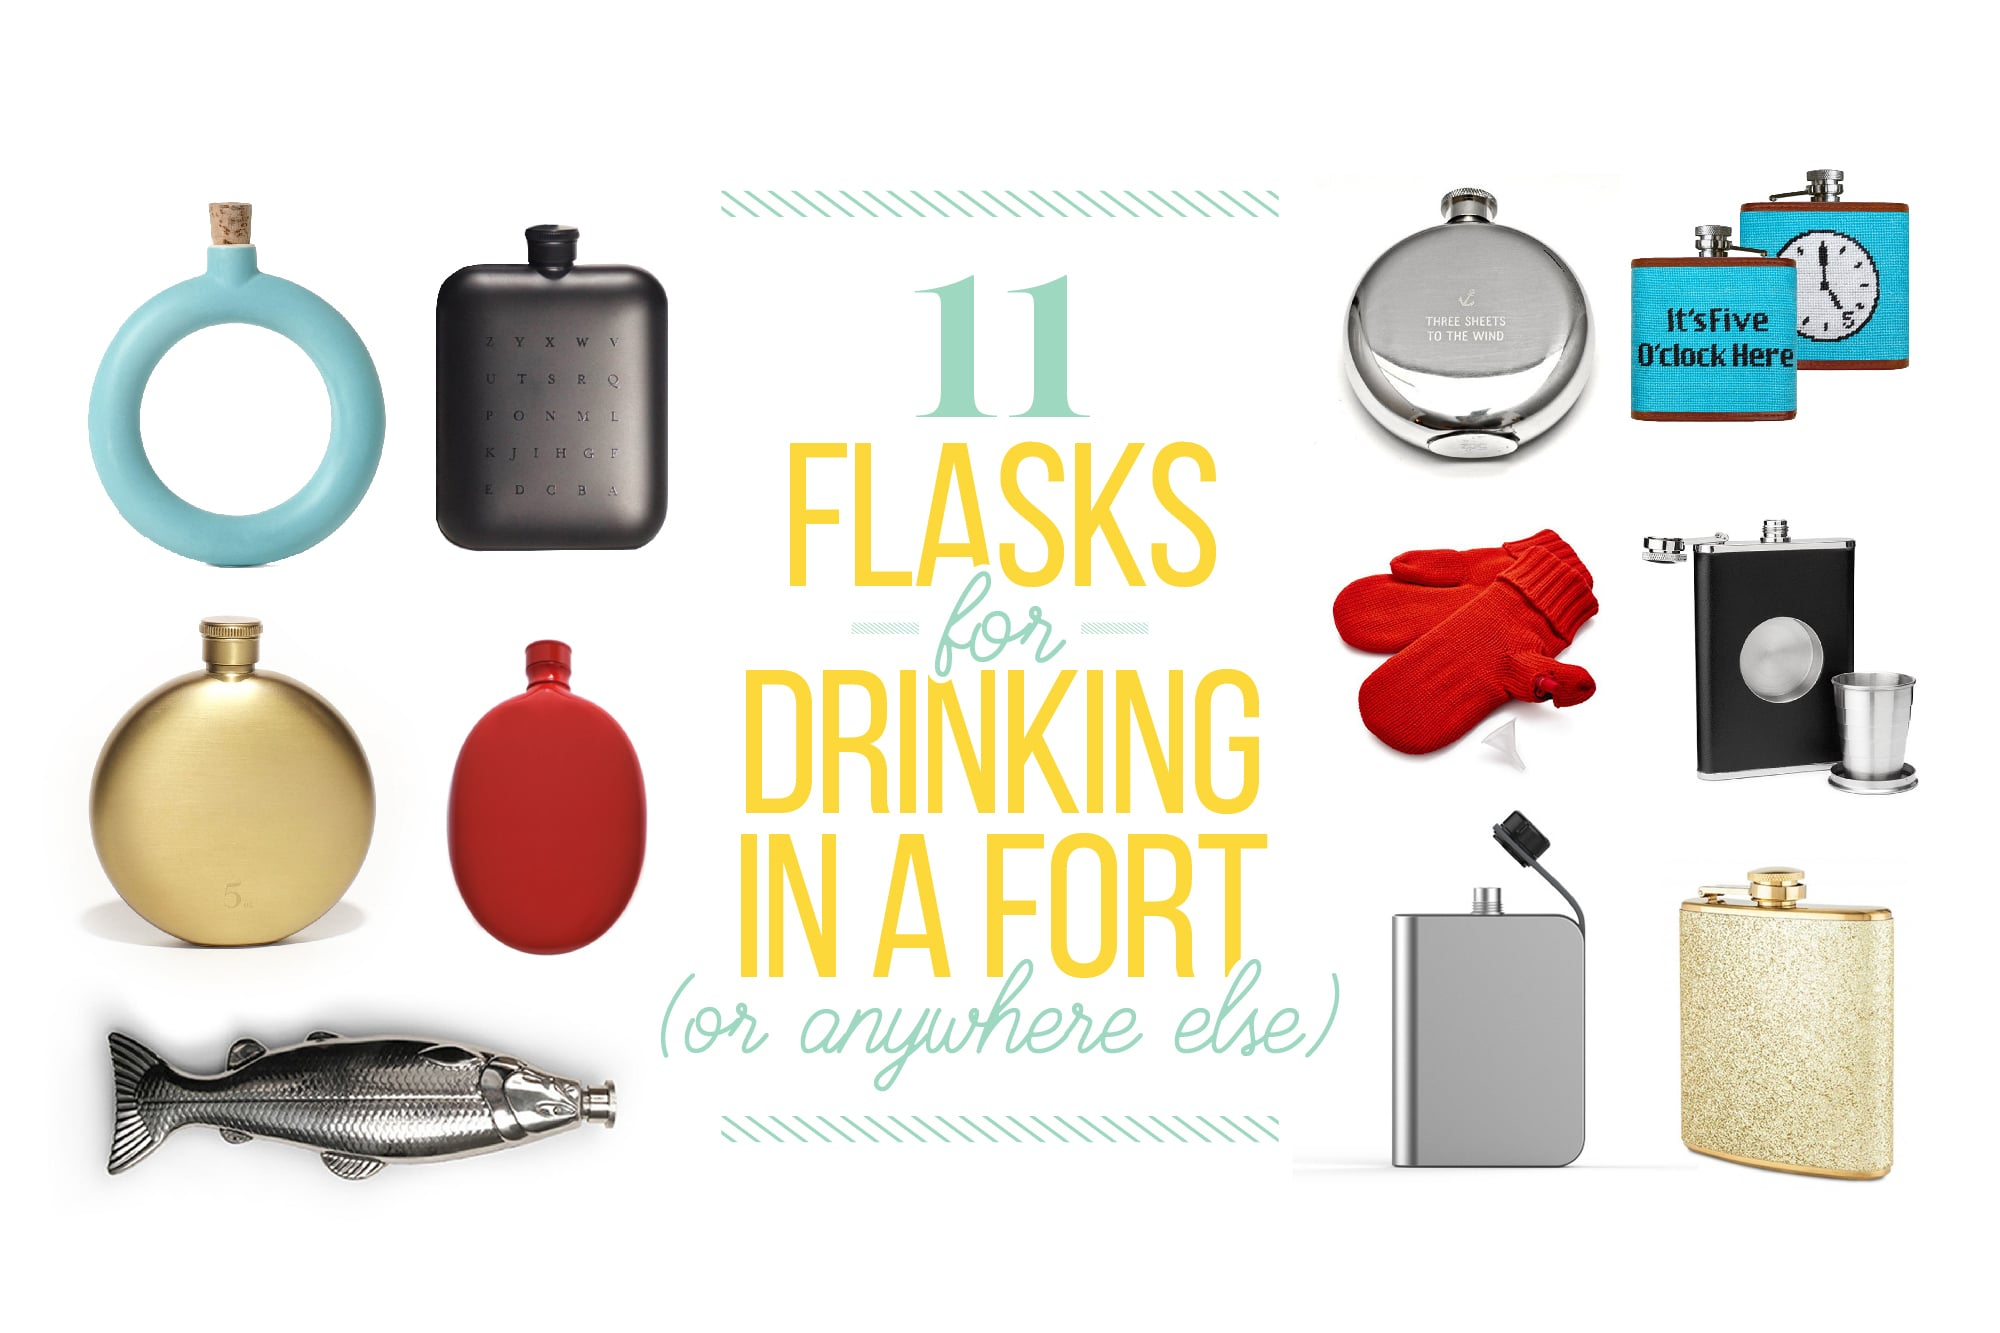 11 Classy Flasks for Drinking Anywhere: gallery image 1